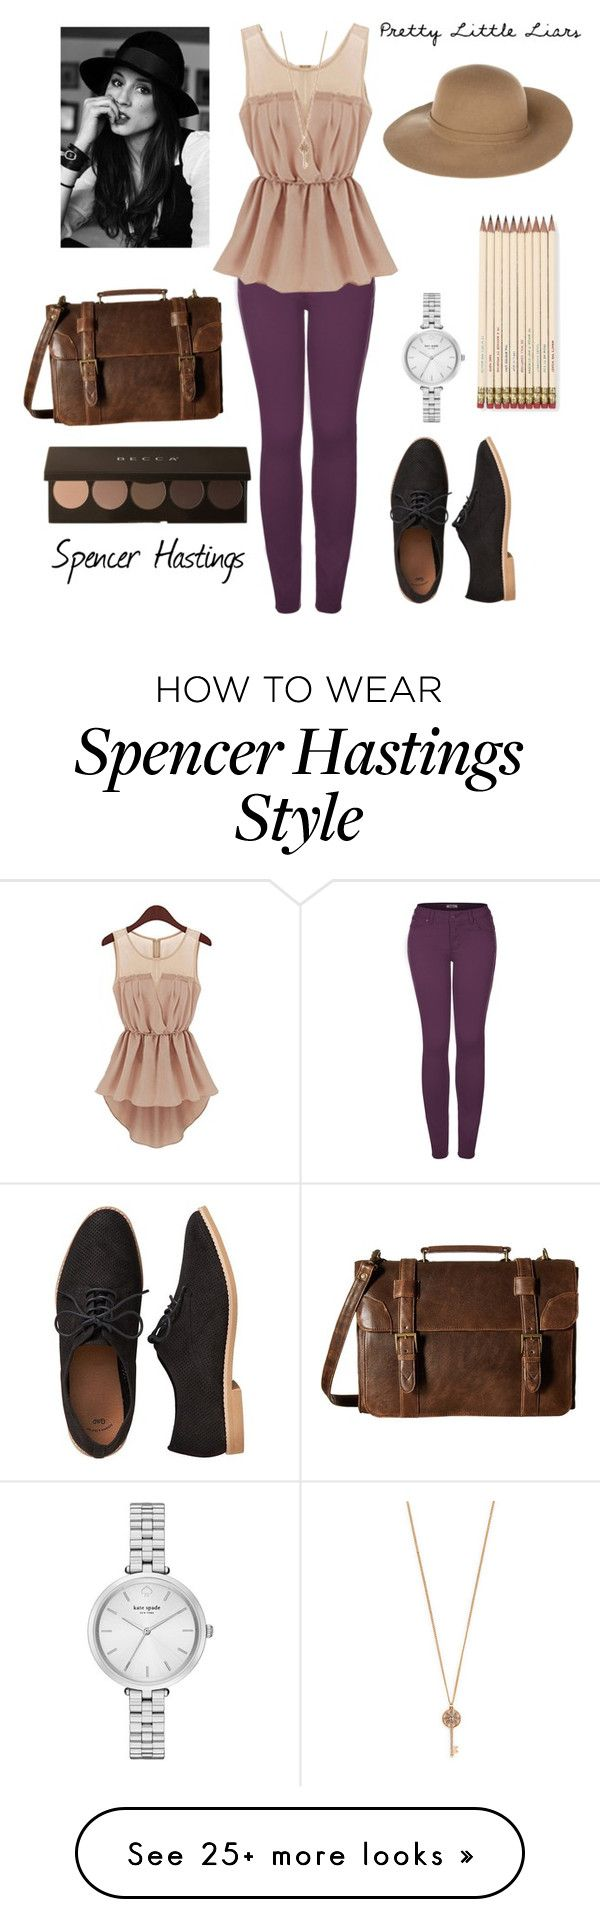 """Spencer Hastings - pretty little liars"" by charactercovers on Polyvore featuring 2LUV, Aéropostale, Kate Spade, Gap, Scully and Armani Jeans"